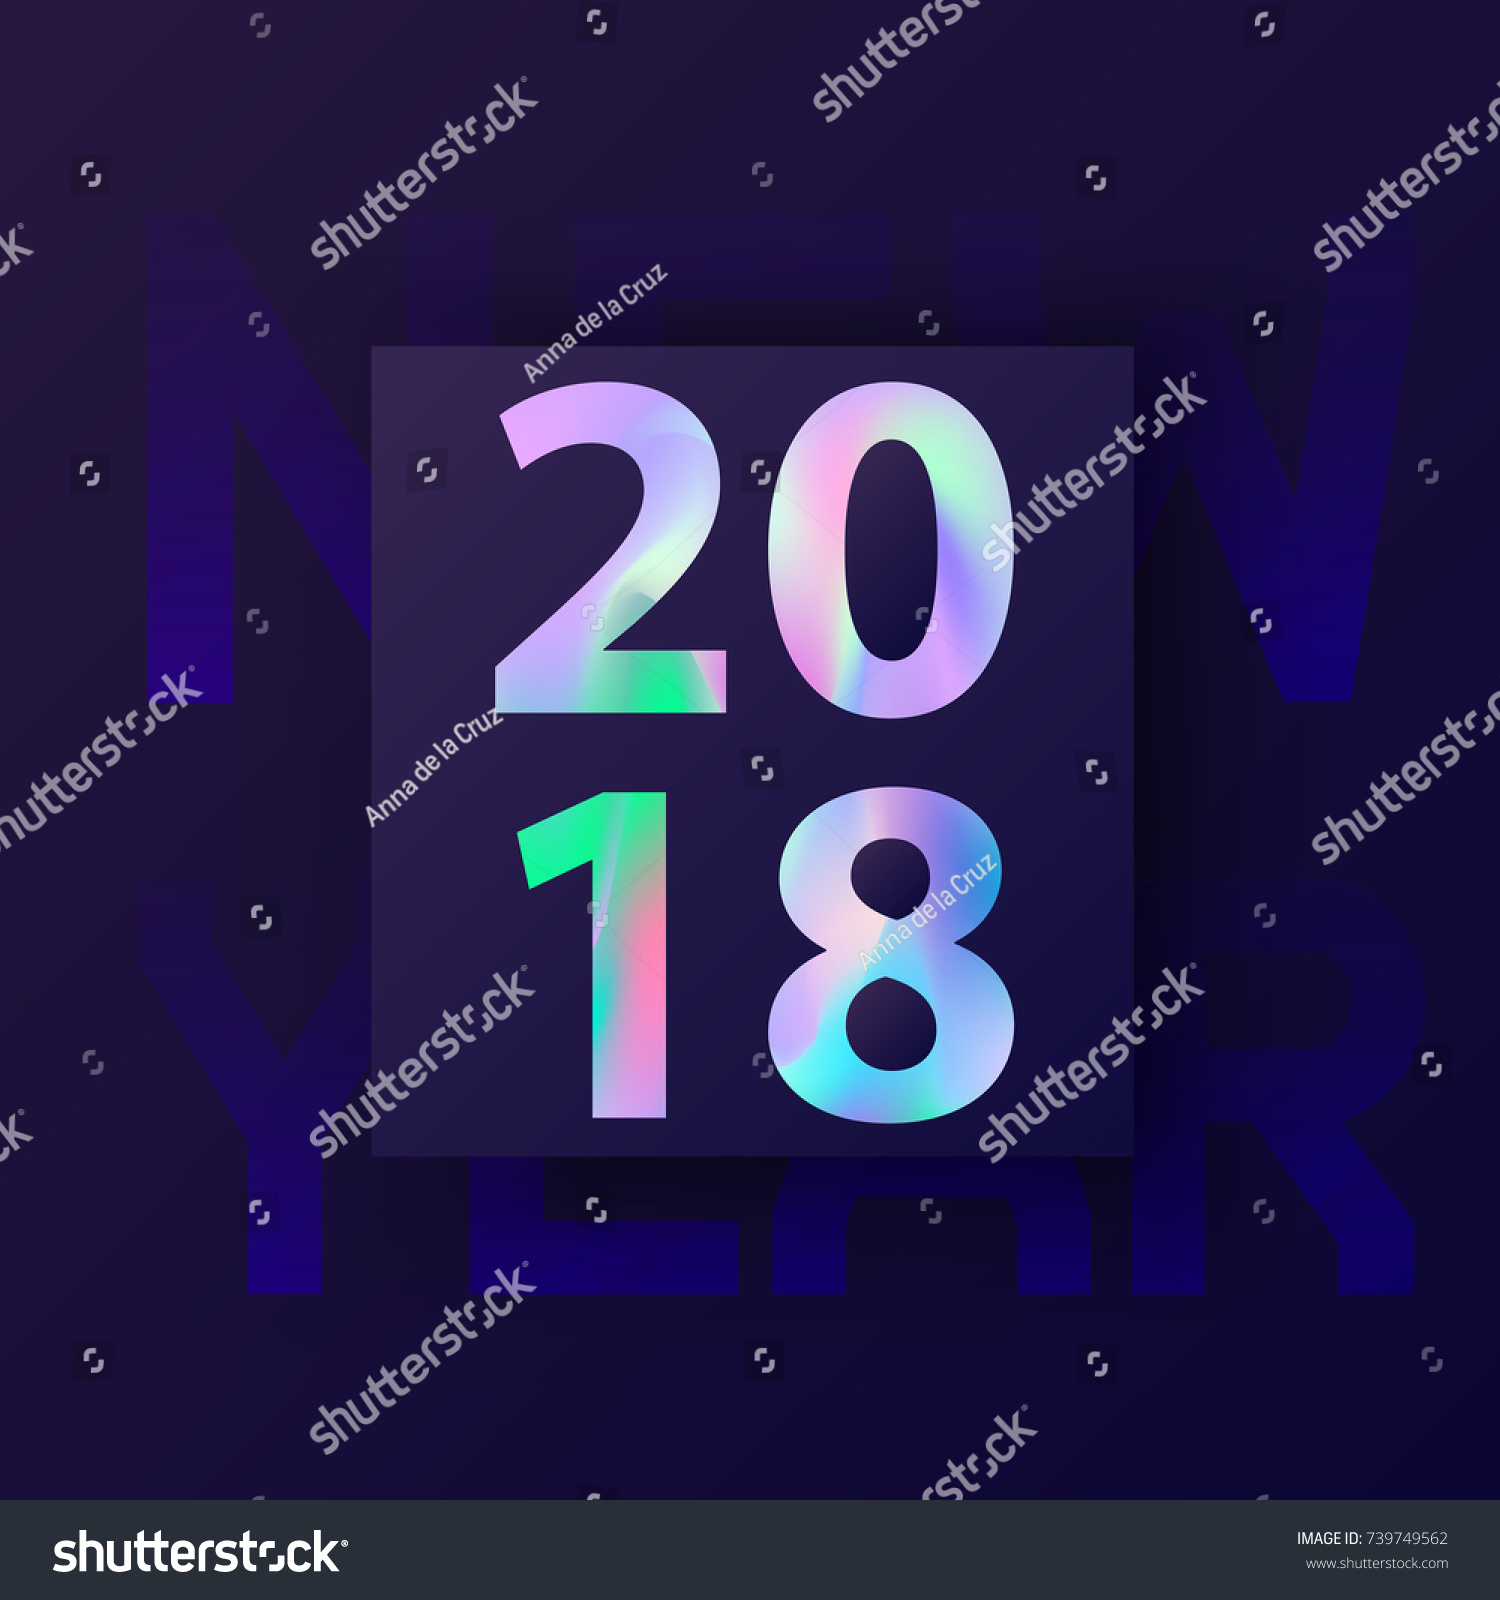 new year card with holographic 2018 modern creative covers design in stylish 80s abstract